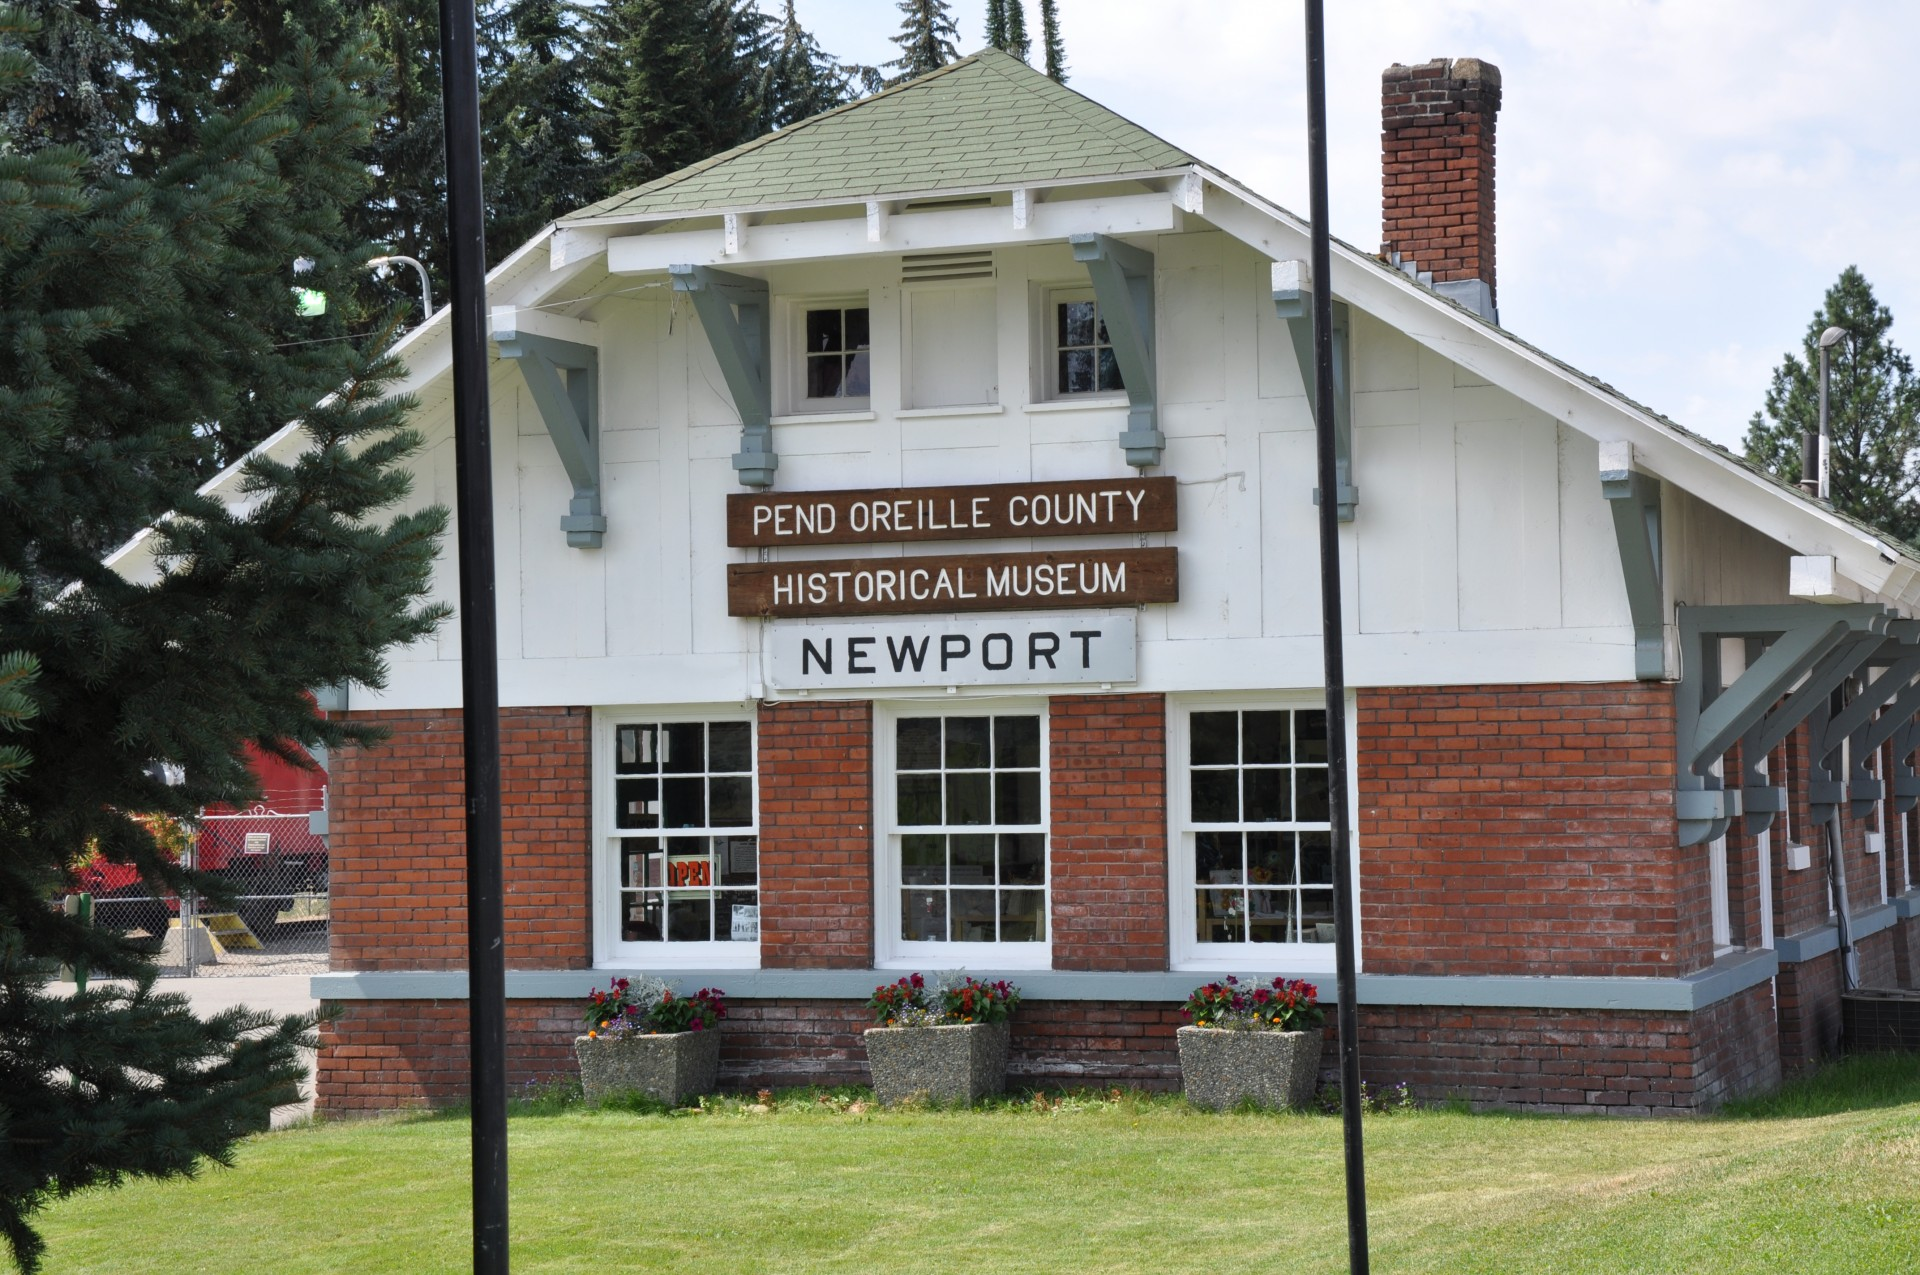 Pend Oreille County Historical Society & Museum 3